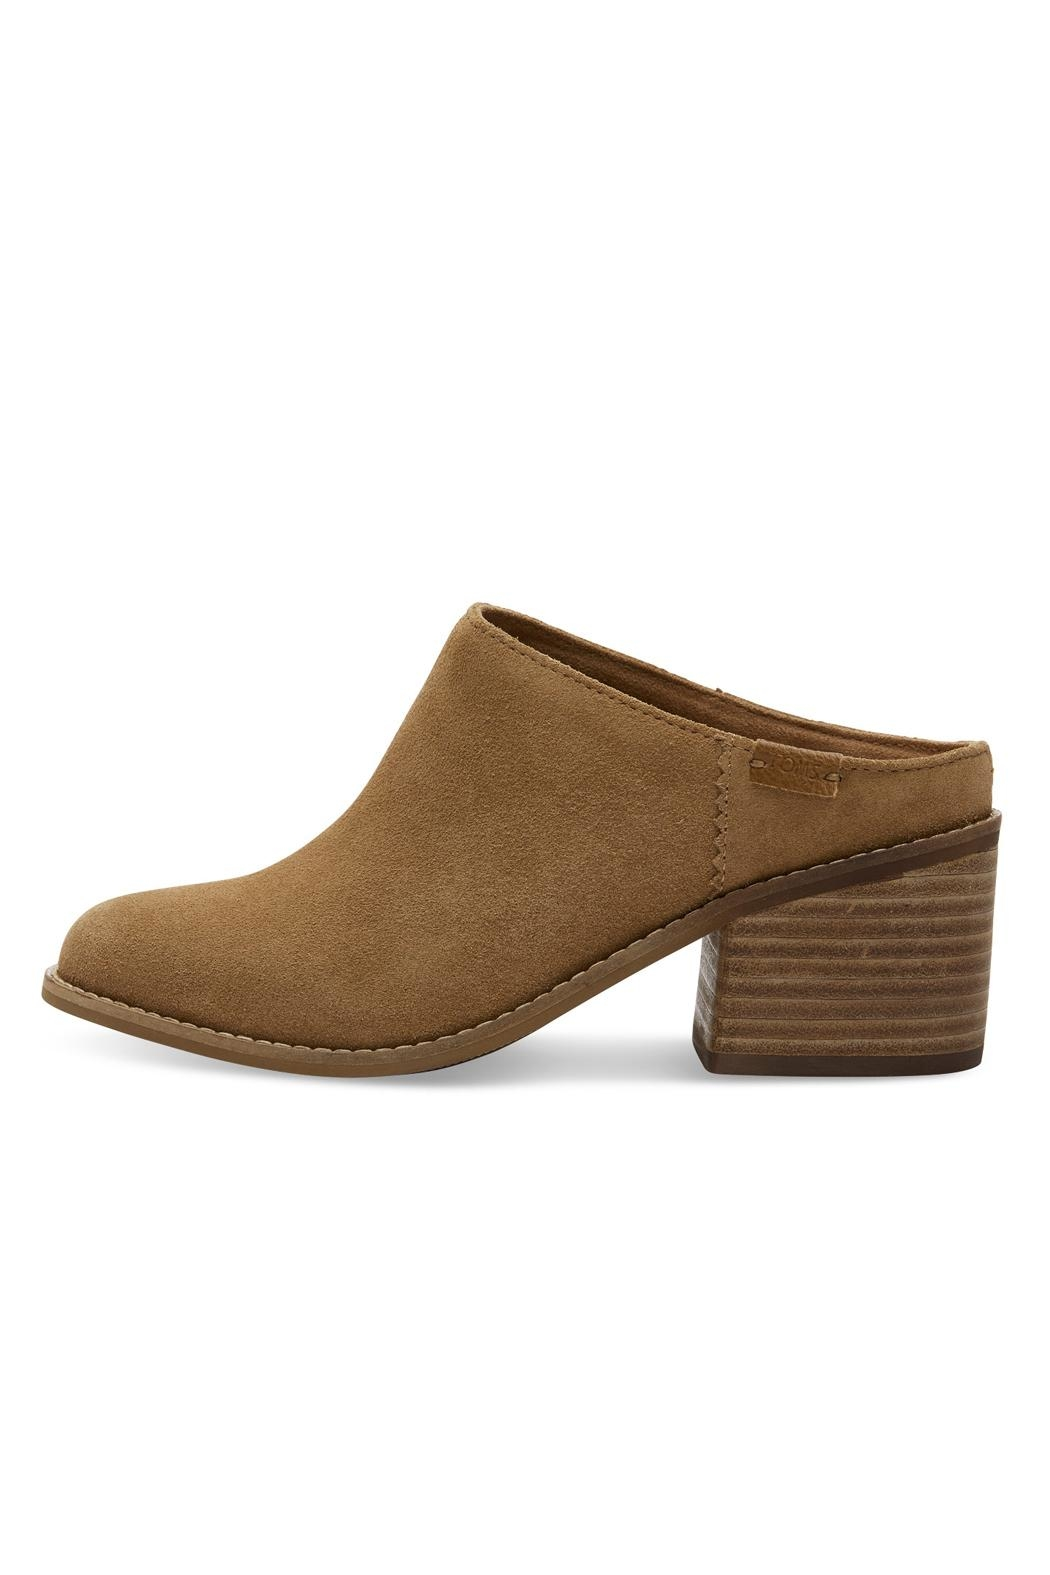 TOMS Suede Leila Mule Shoes - Main Image